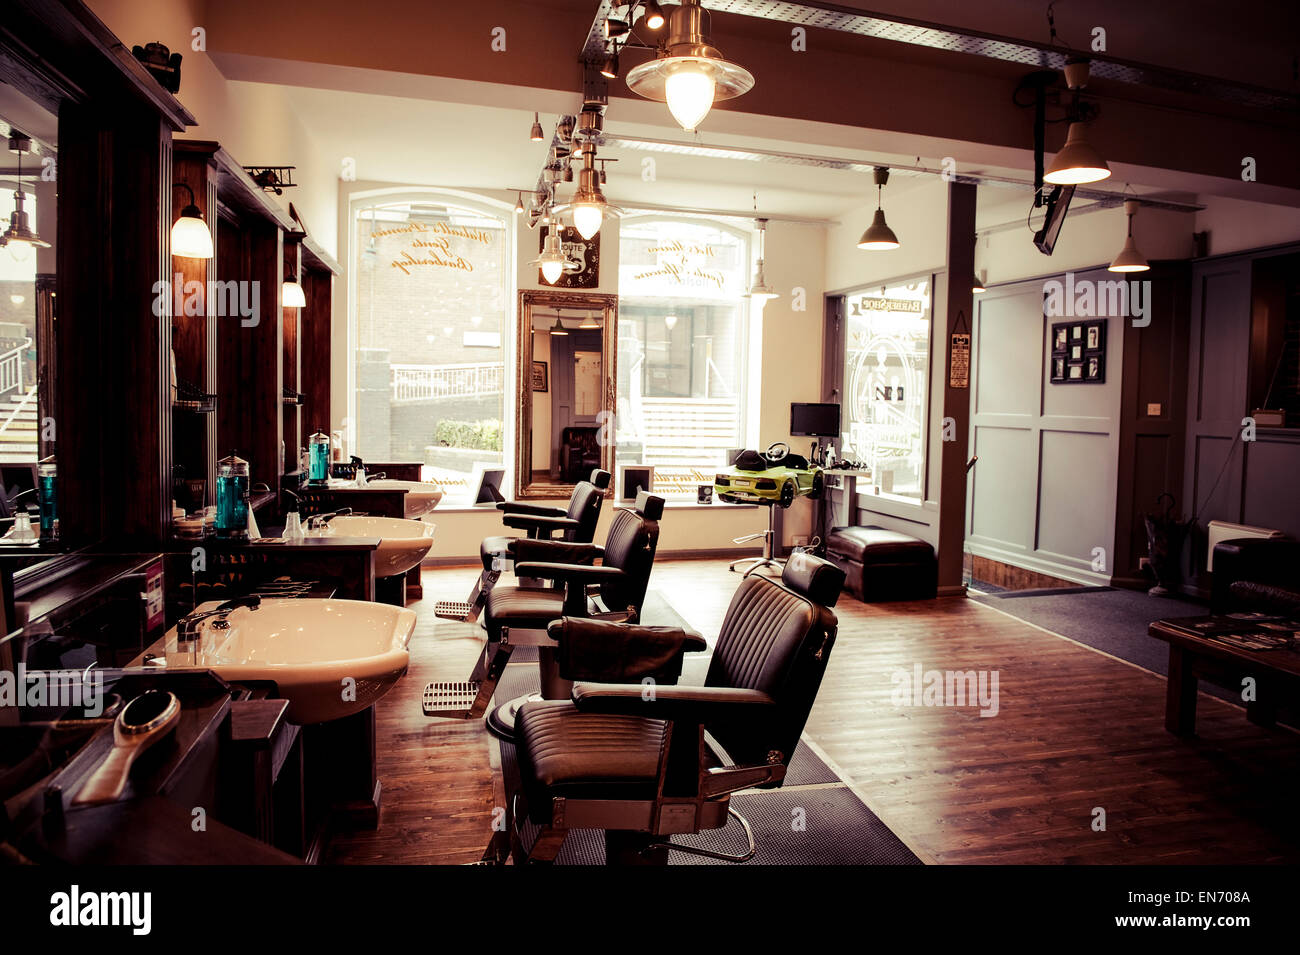 Men's barber shop, retro styled interior design Stock